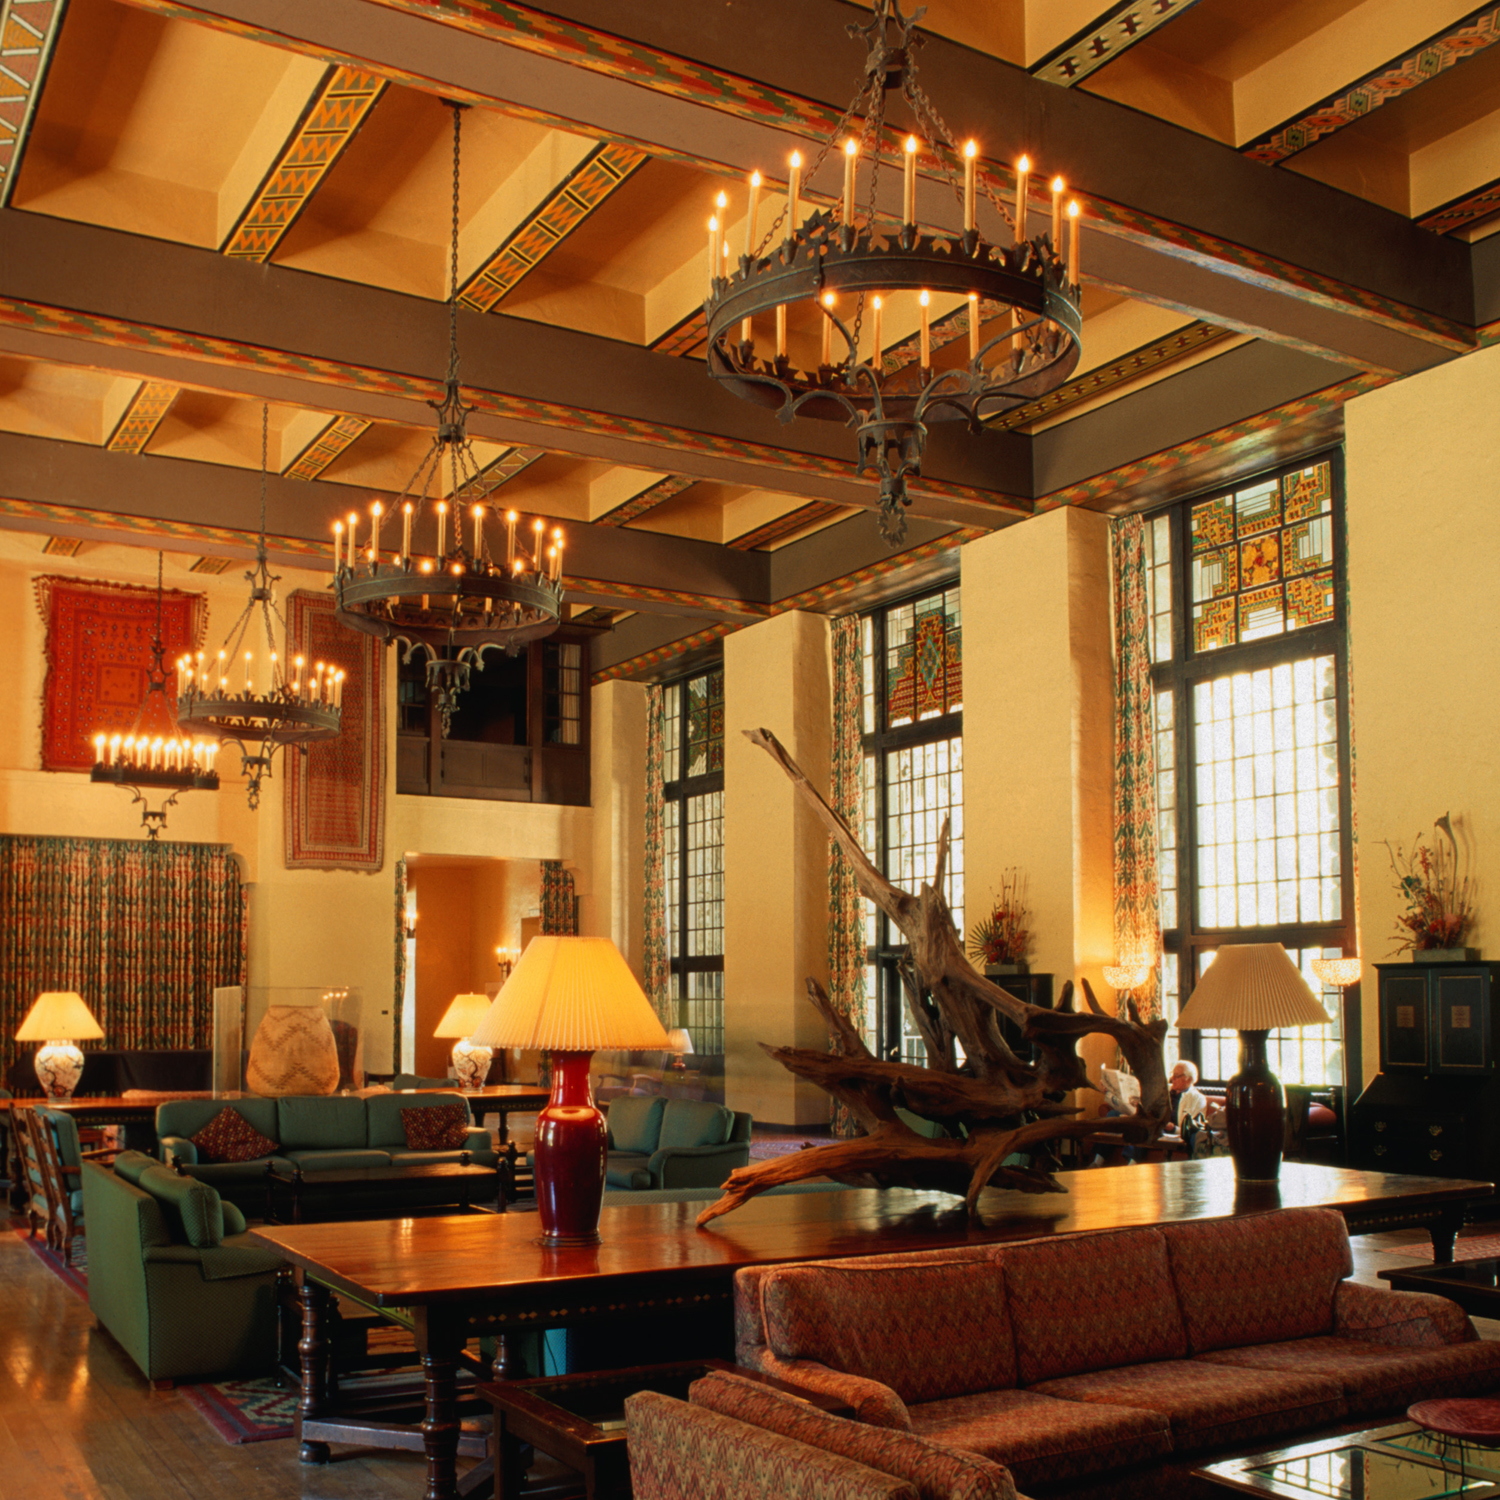 The Majestic Yosemite Hotel offers a gift shop with a focus on local artisans, a decadent sweet shop, a comfortable bar and a heated outdoor swimming pool. The Majestic Yosemite Hotel Dining Room serves breakfast, lunch, dinner and Sunday brunch.